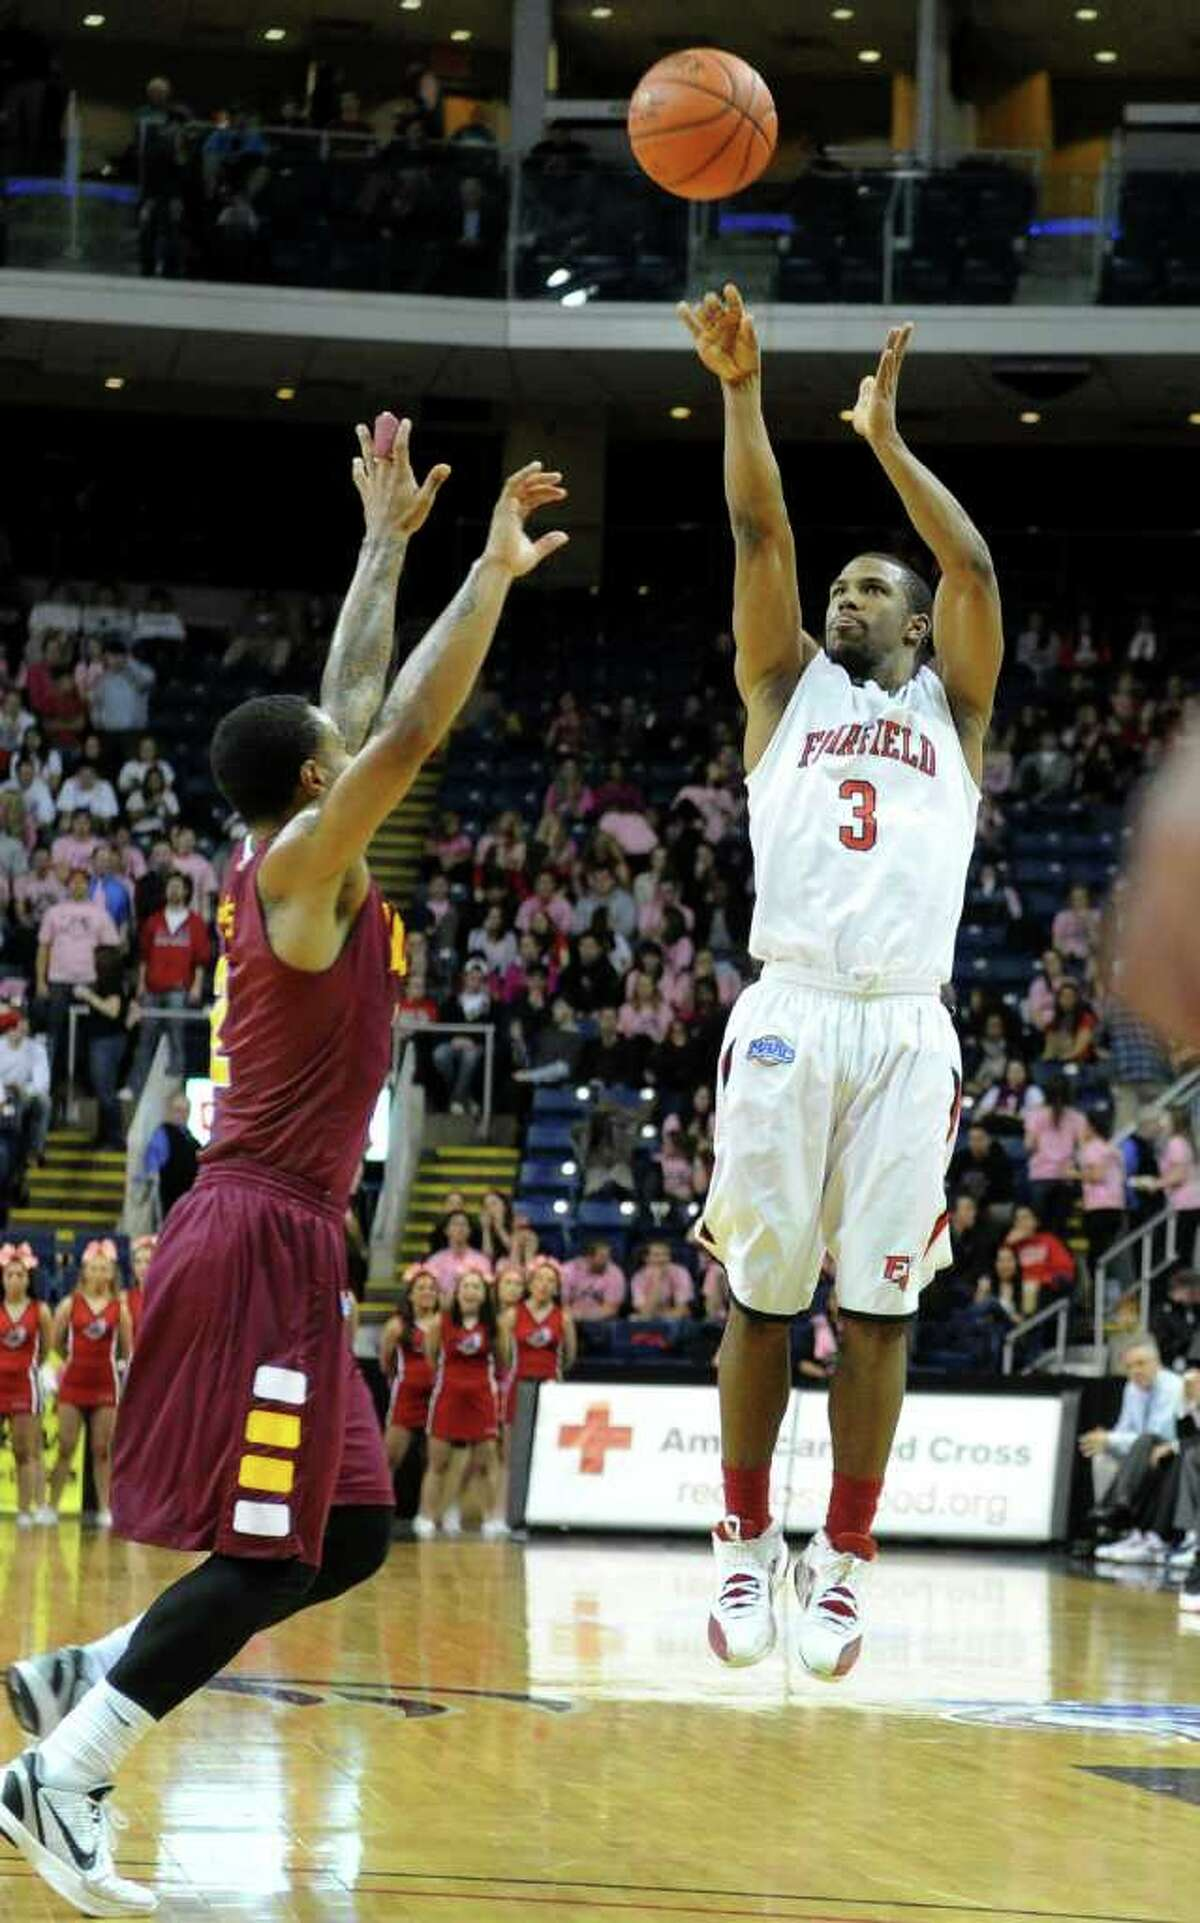 Highlights from men's basketball action between Fairfield University and Iona College at the Webster Bank Arena in Bridgeport, Conn. on Friday January 27, 2012. Fairfield University's #3 Derek Needham.